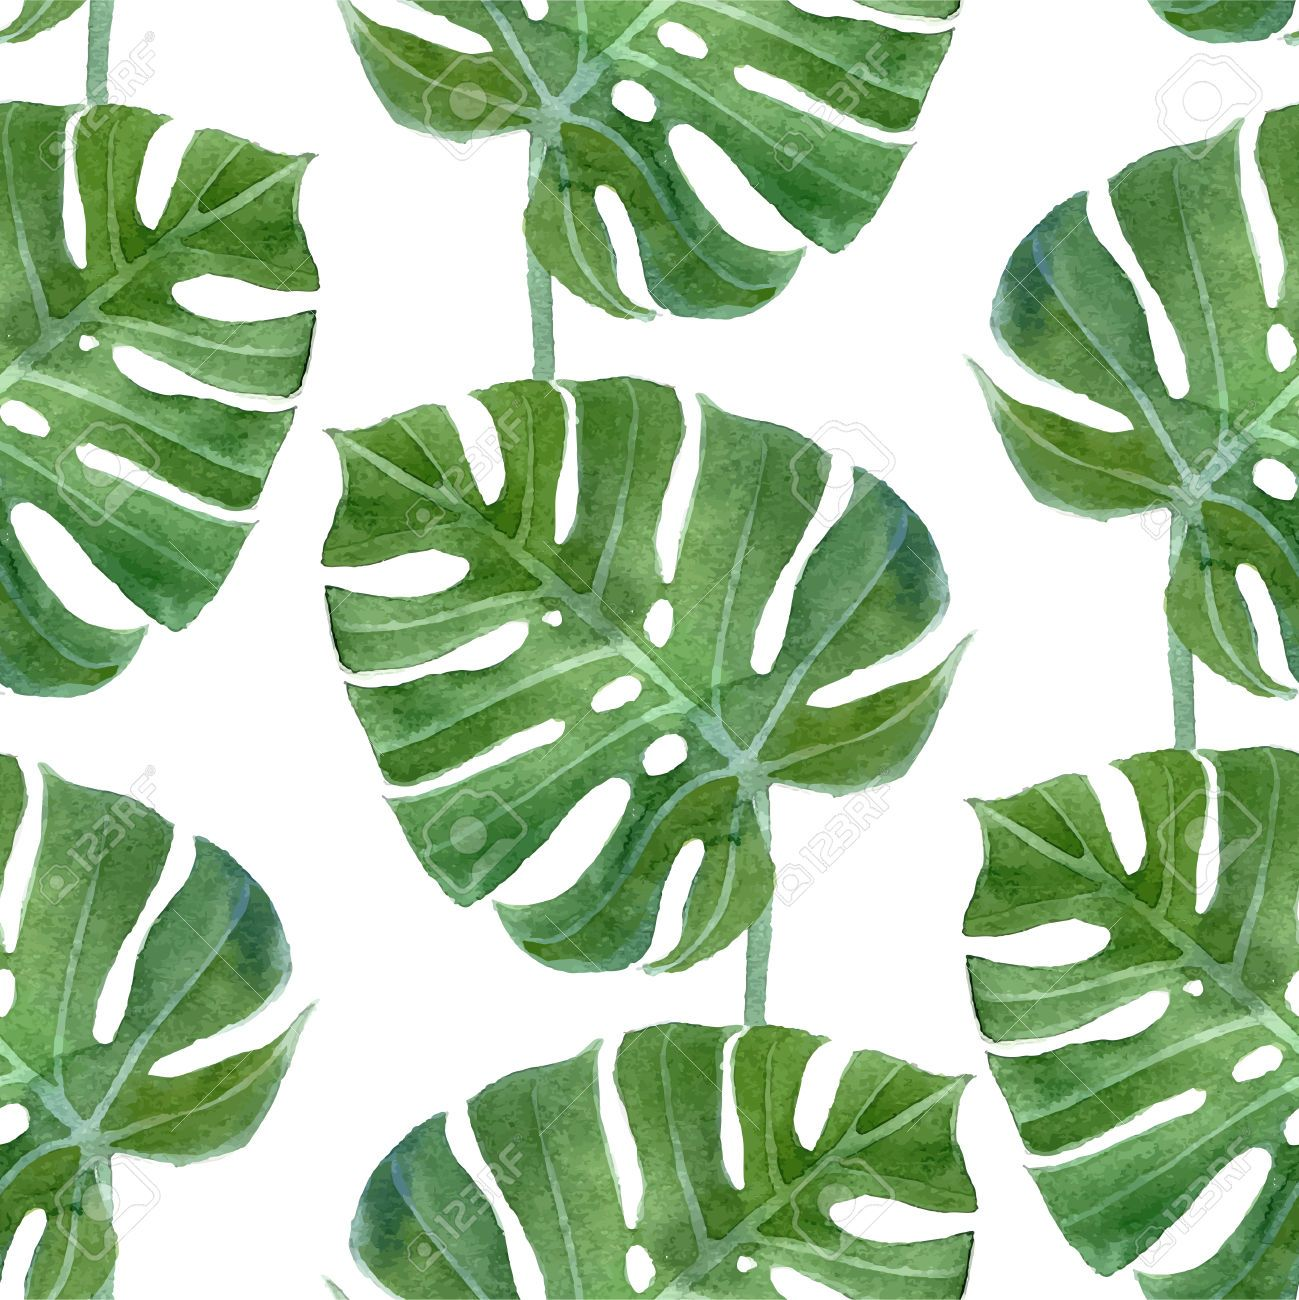 Watercolor Green Plants Monstera Nature Posters And Prints: Pin By Francesco Sapuppo On Interior